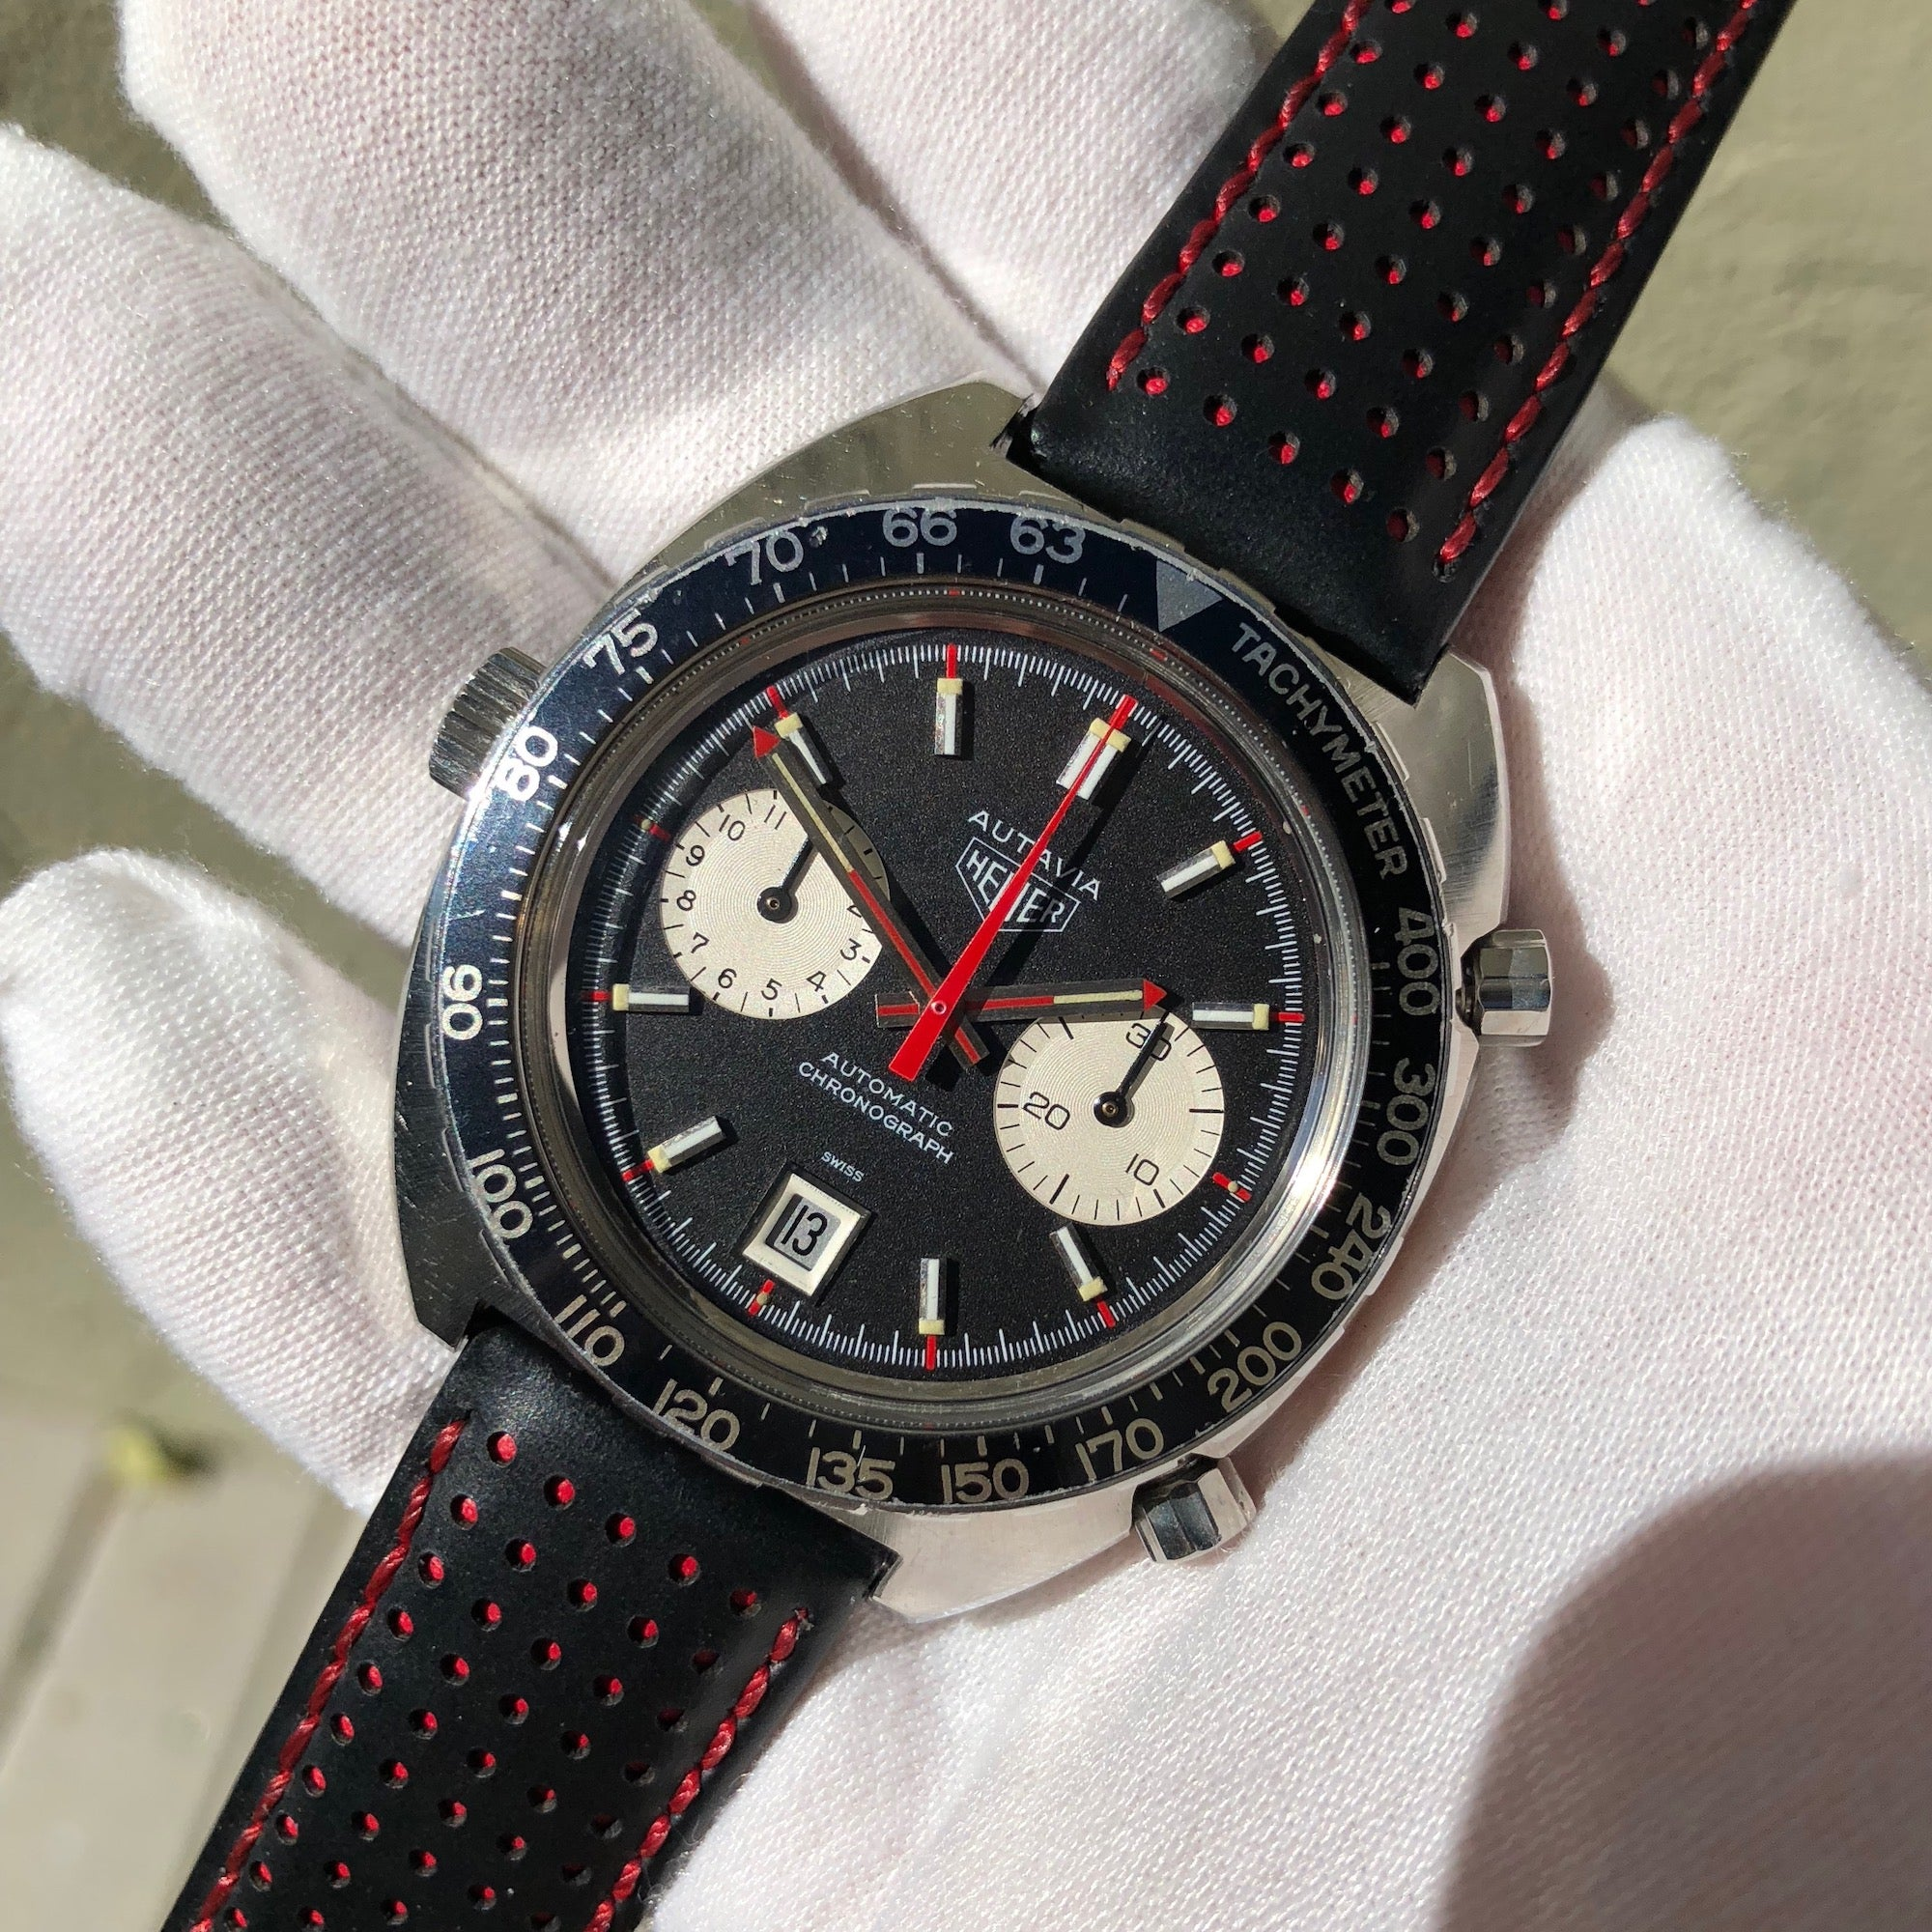 Vintage Heuer Autavia 1163 Viceroy Steel Chronograph Cal. 12 Wristwatch Circa 1972 - Hashtag Watch Company